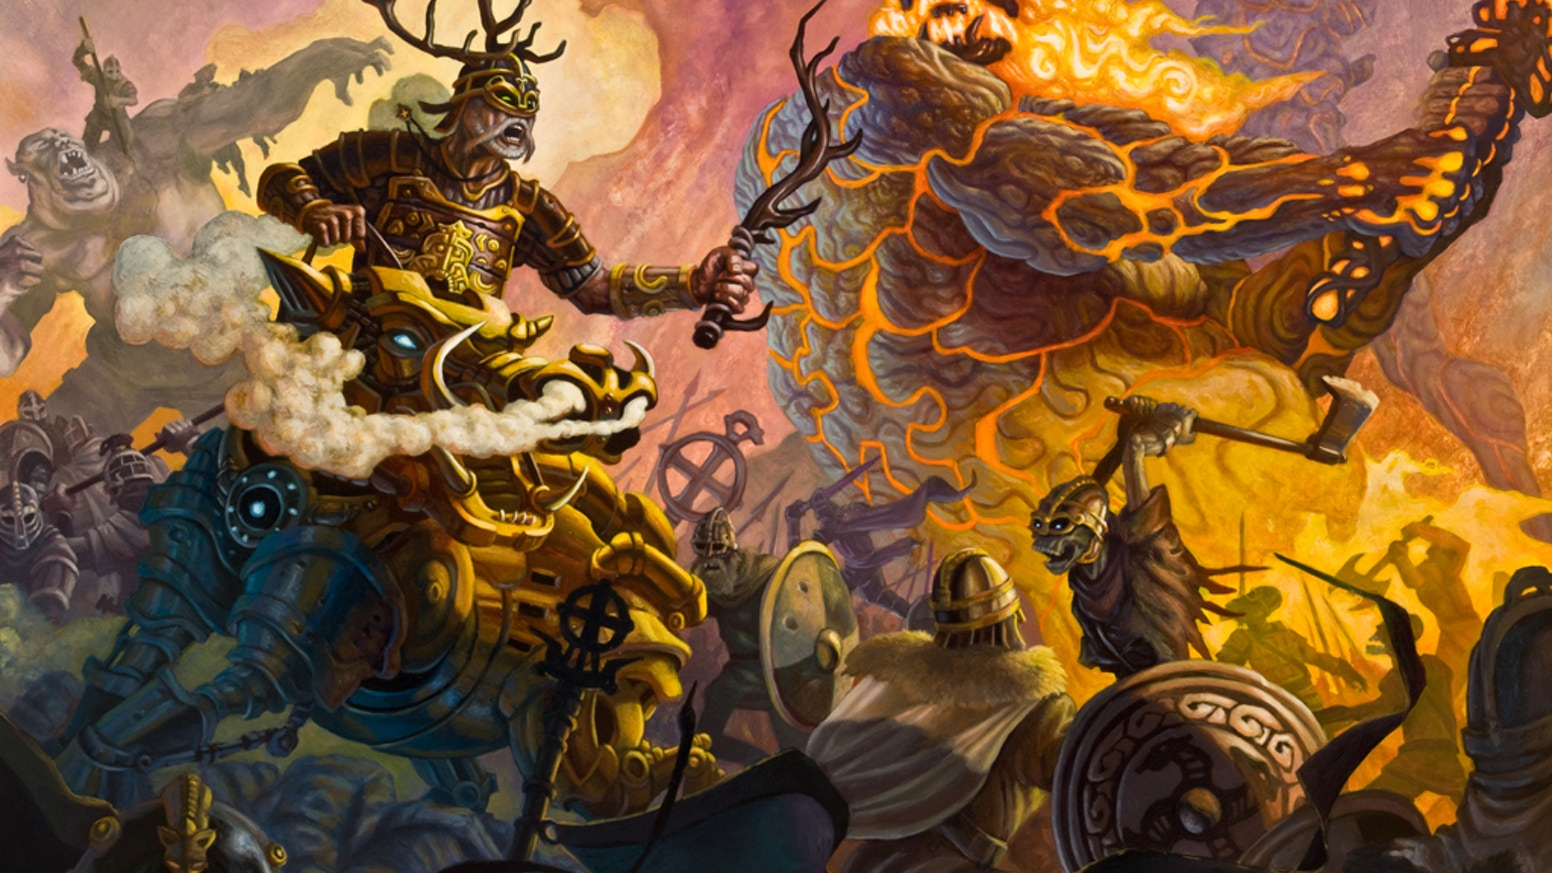 A personal series of NORSE MYTHOLOGY themed oil paintings from artist Sam Flegal with prints for collectors and fans.